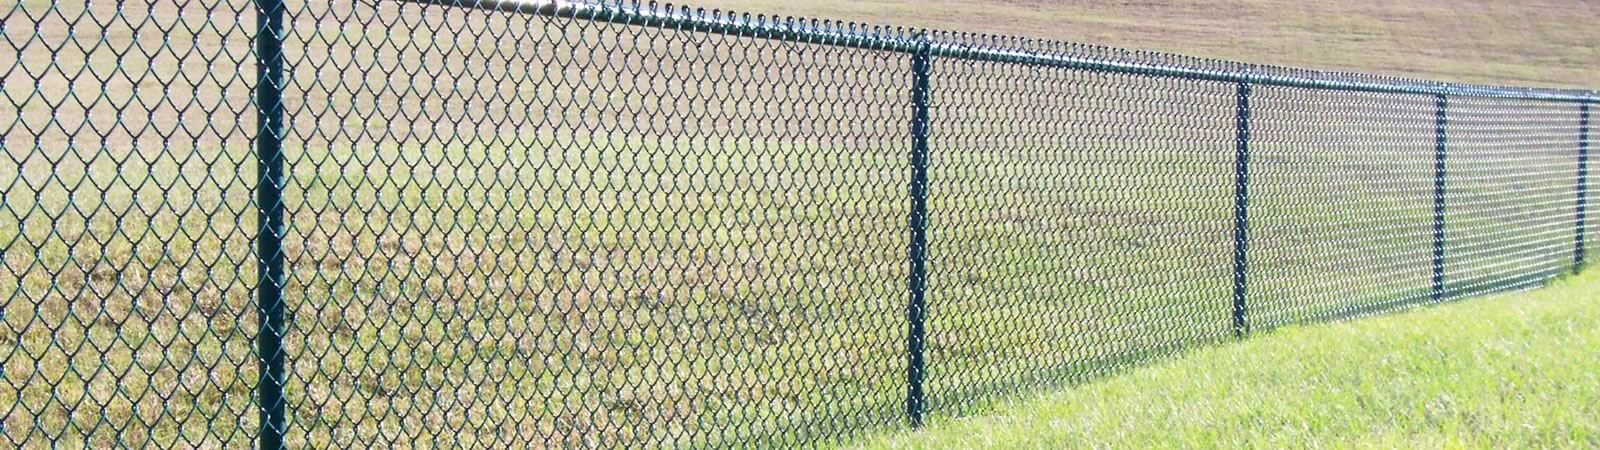 Residential Fence Construction